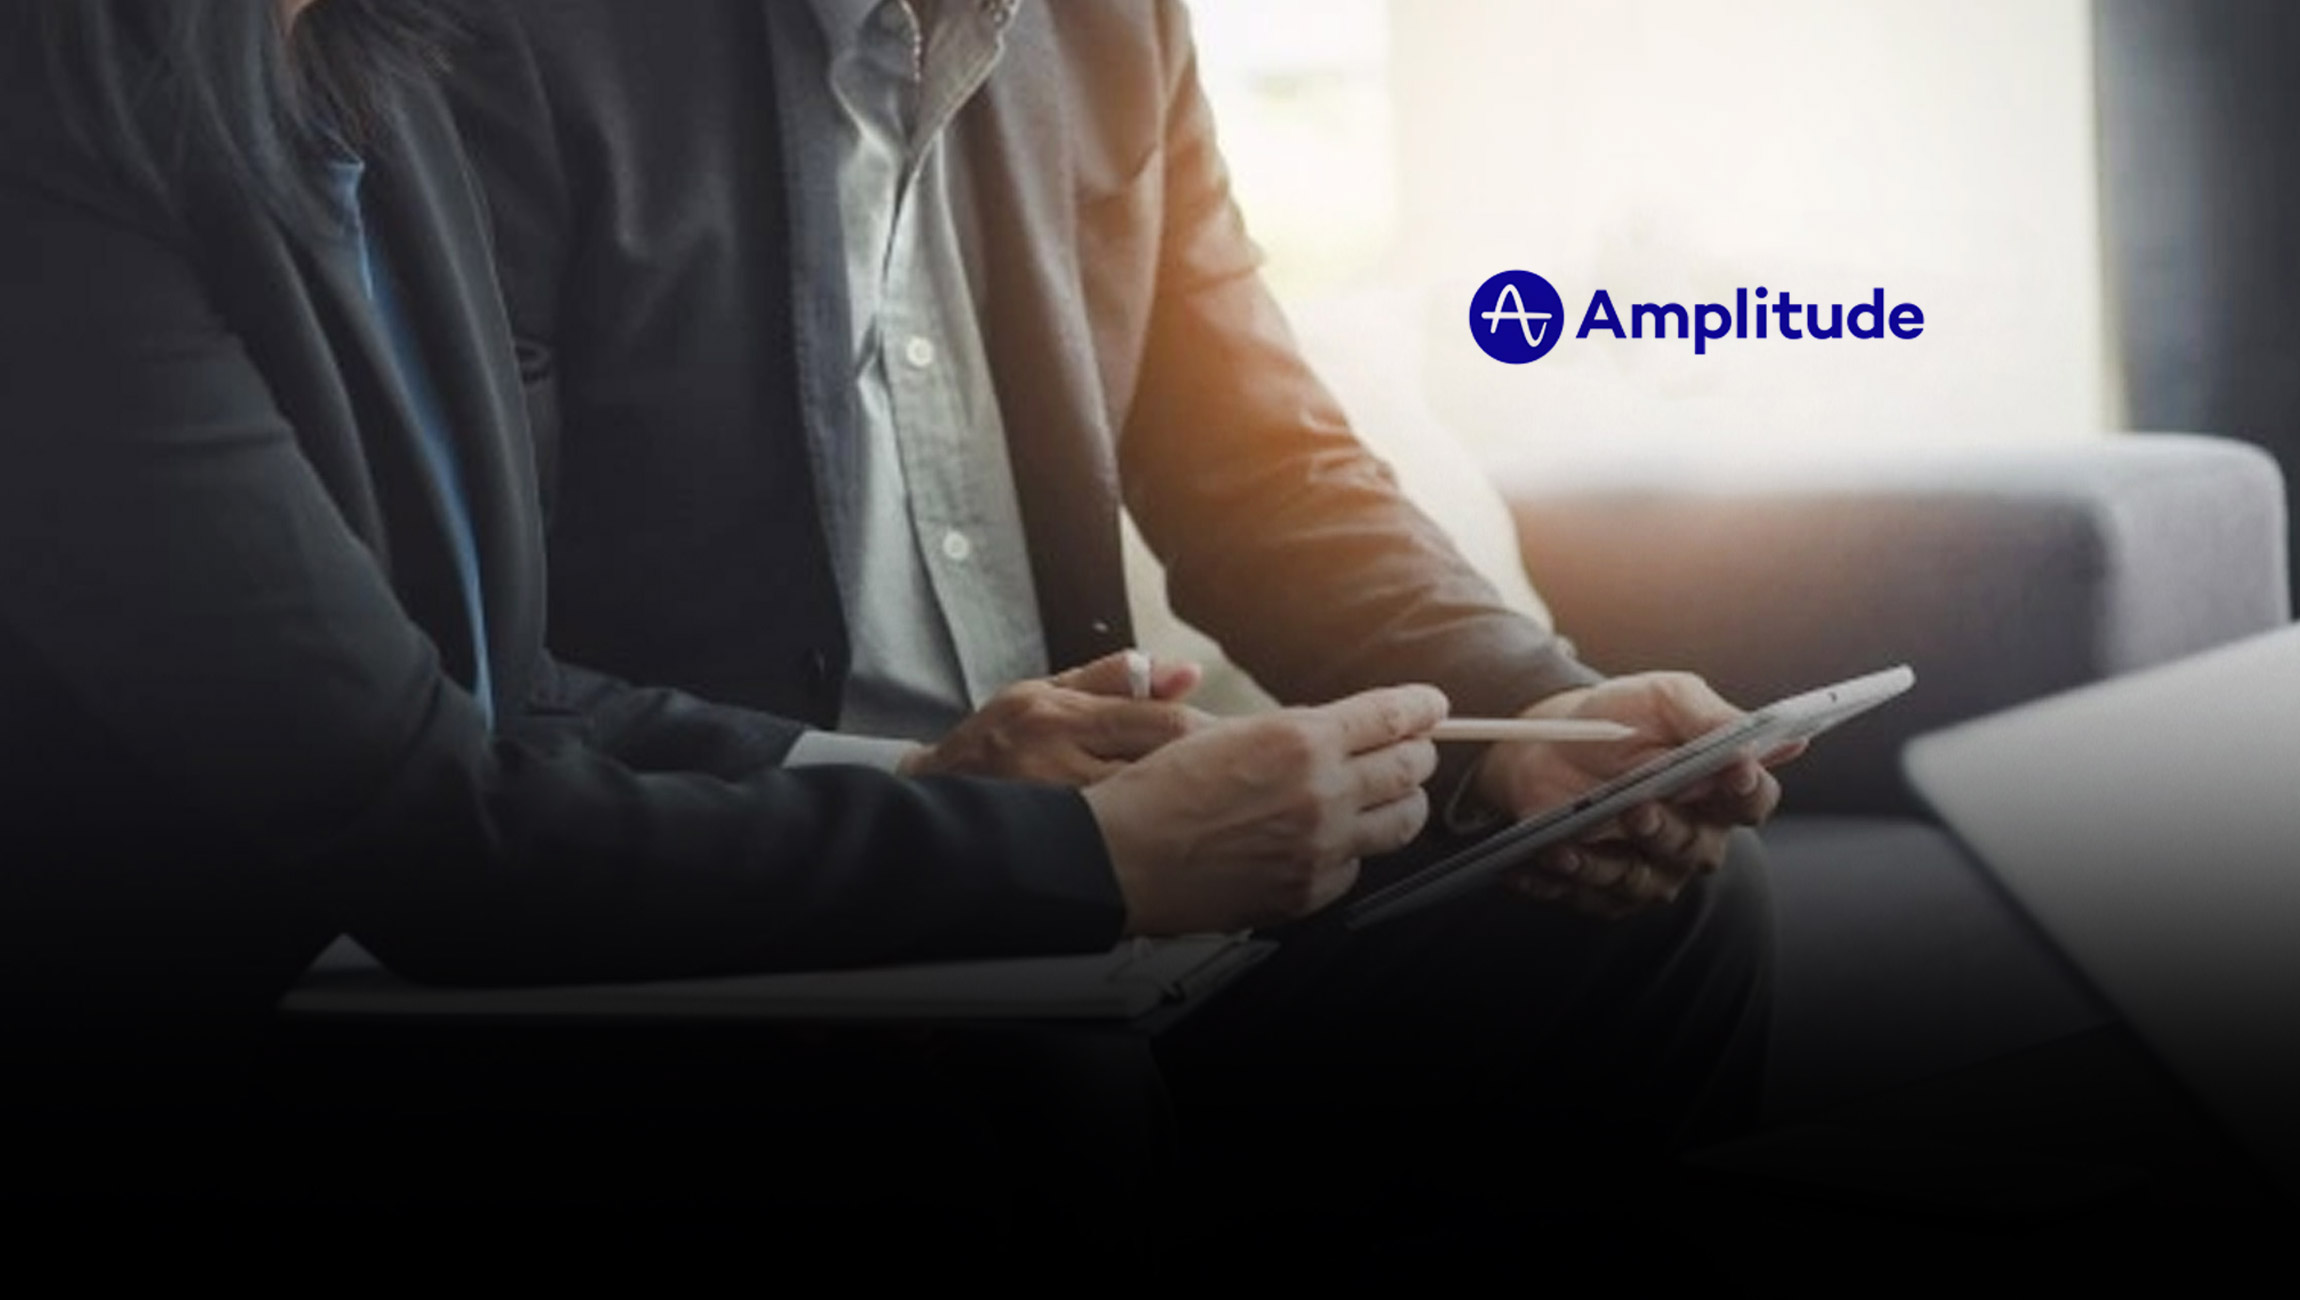 Amplitude Continues its Explosive Growth, Debuts on Deloitte's 2020 Technology Fast 500 List